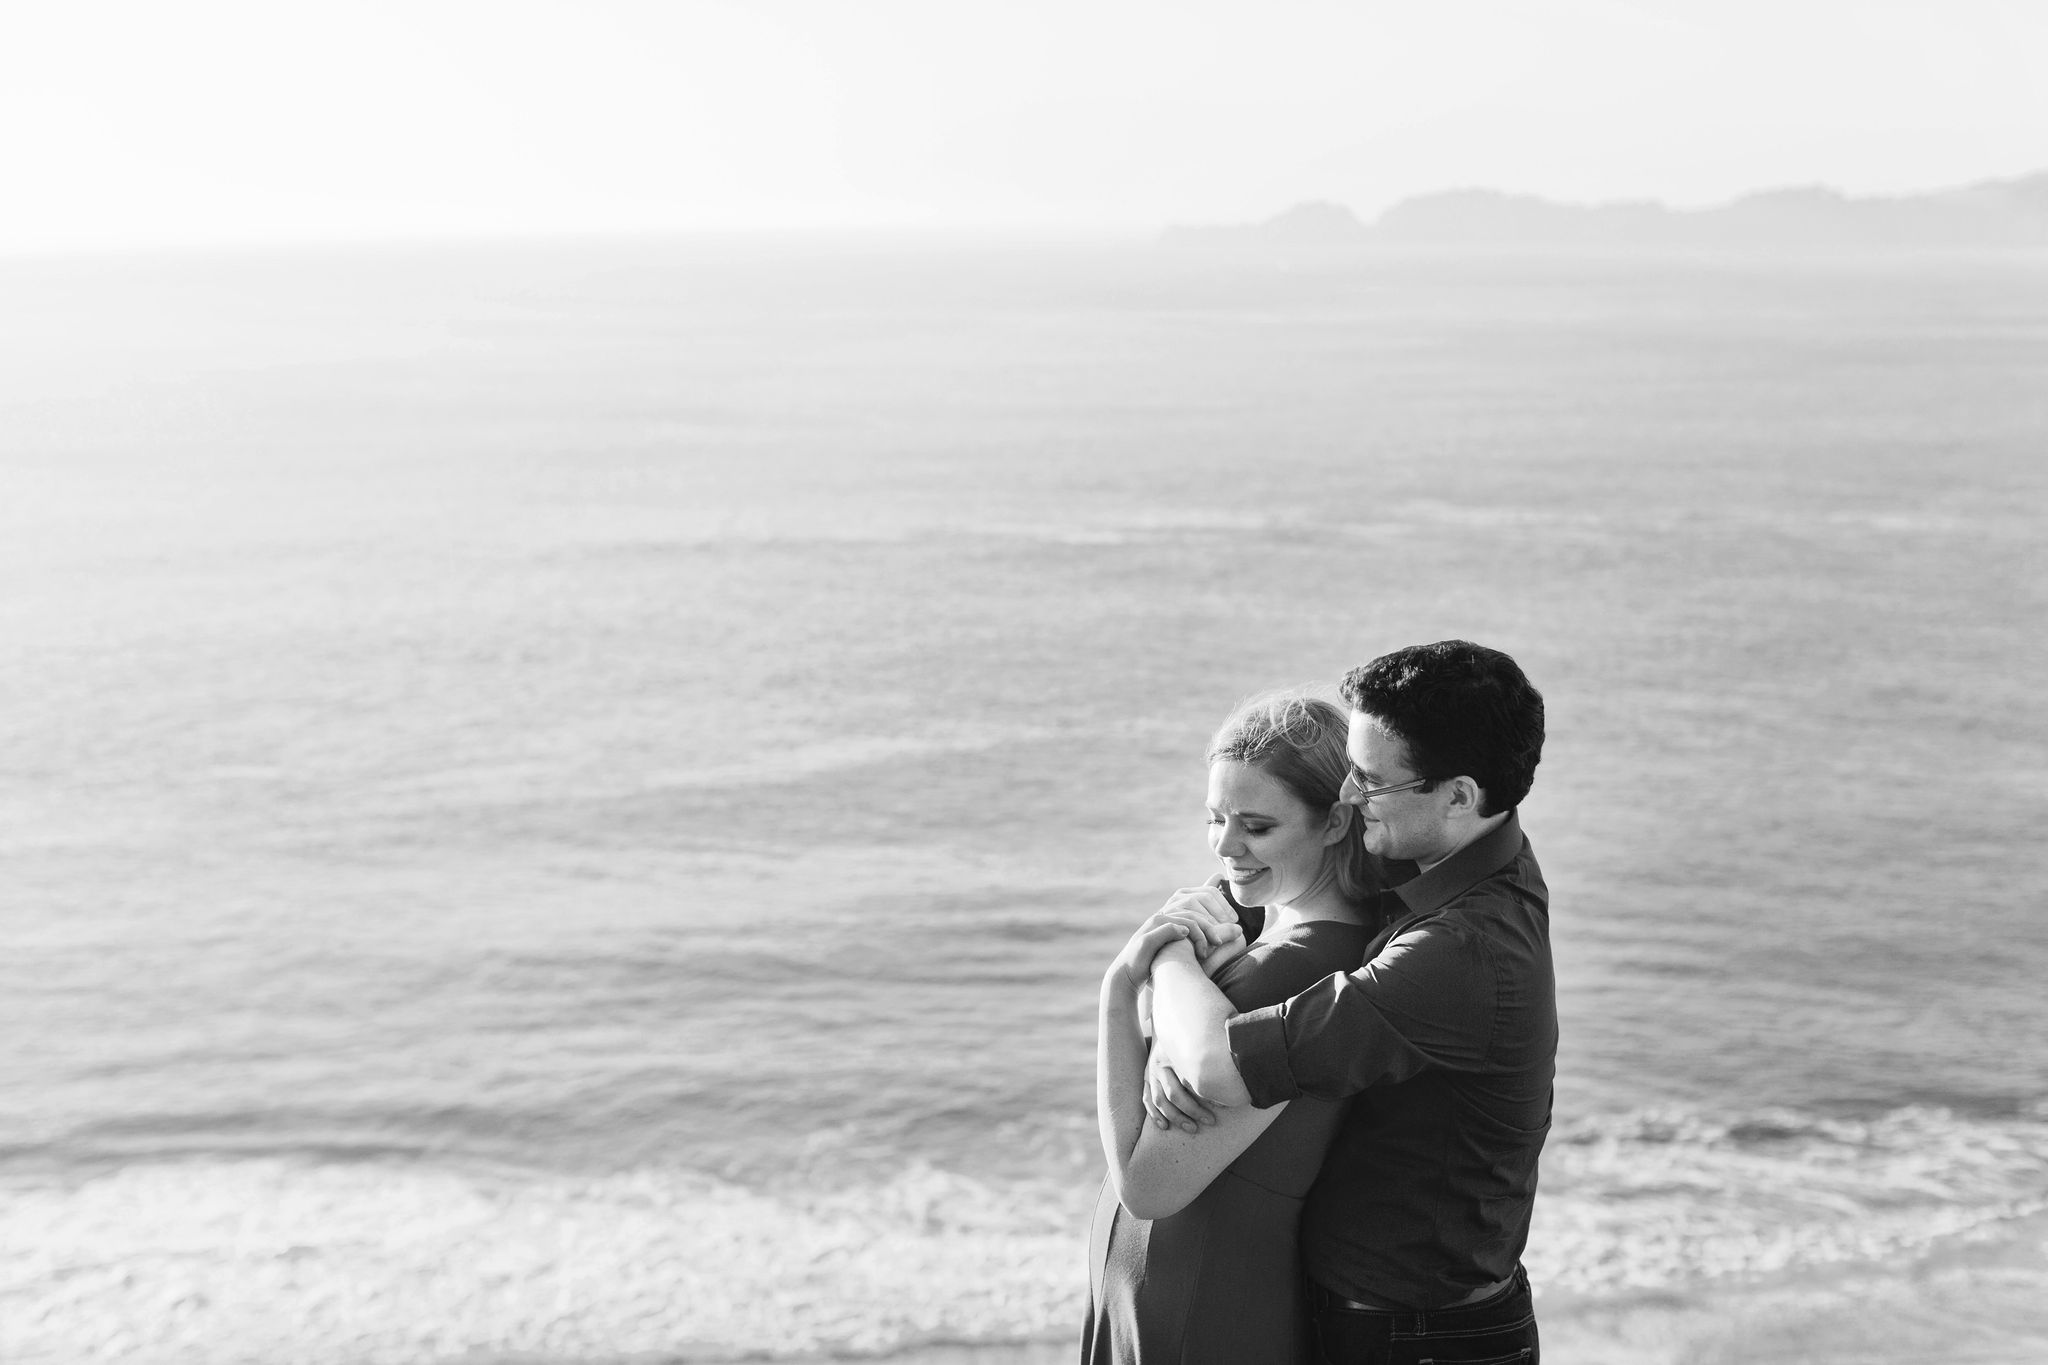 San-Francisco-Engagement-Photo-07.JPG